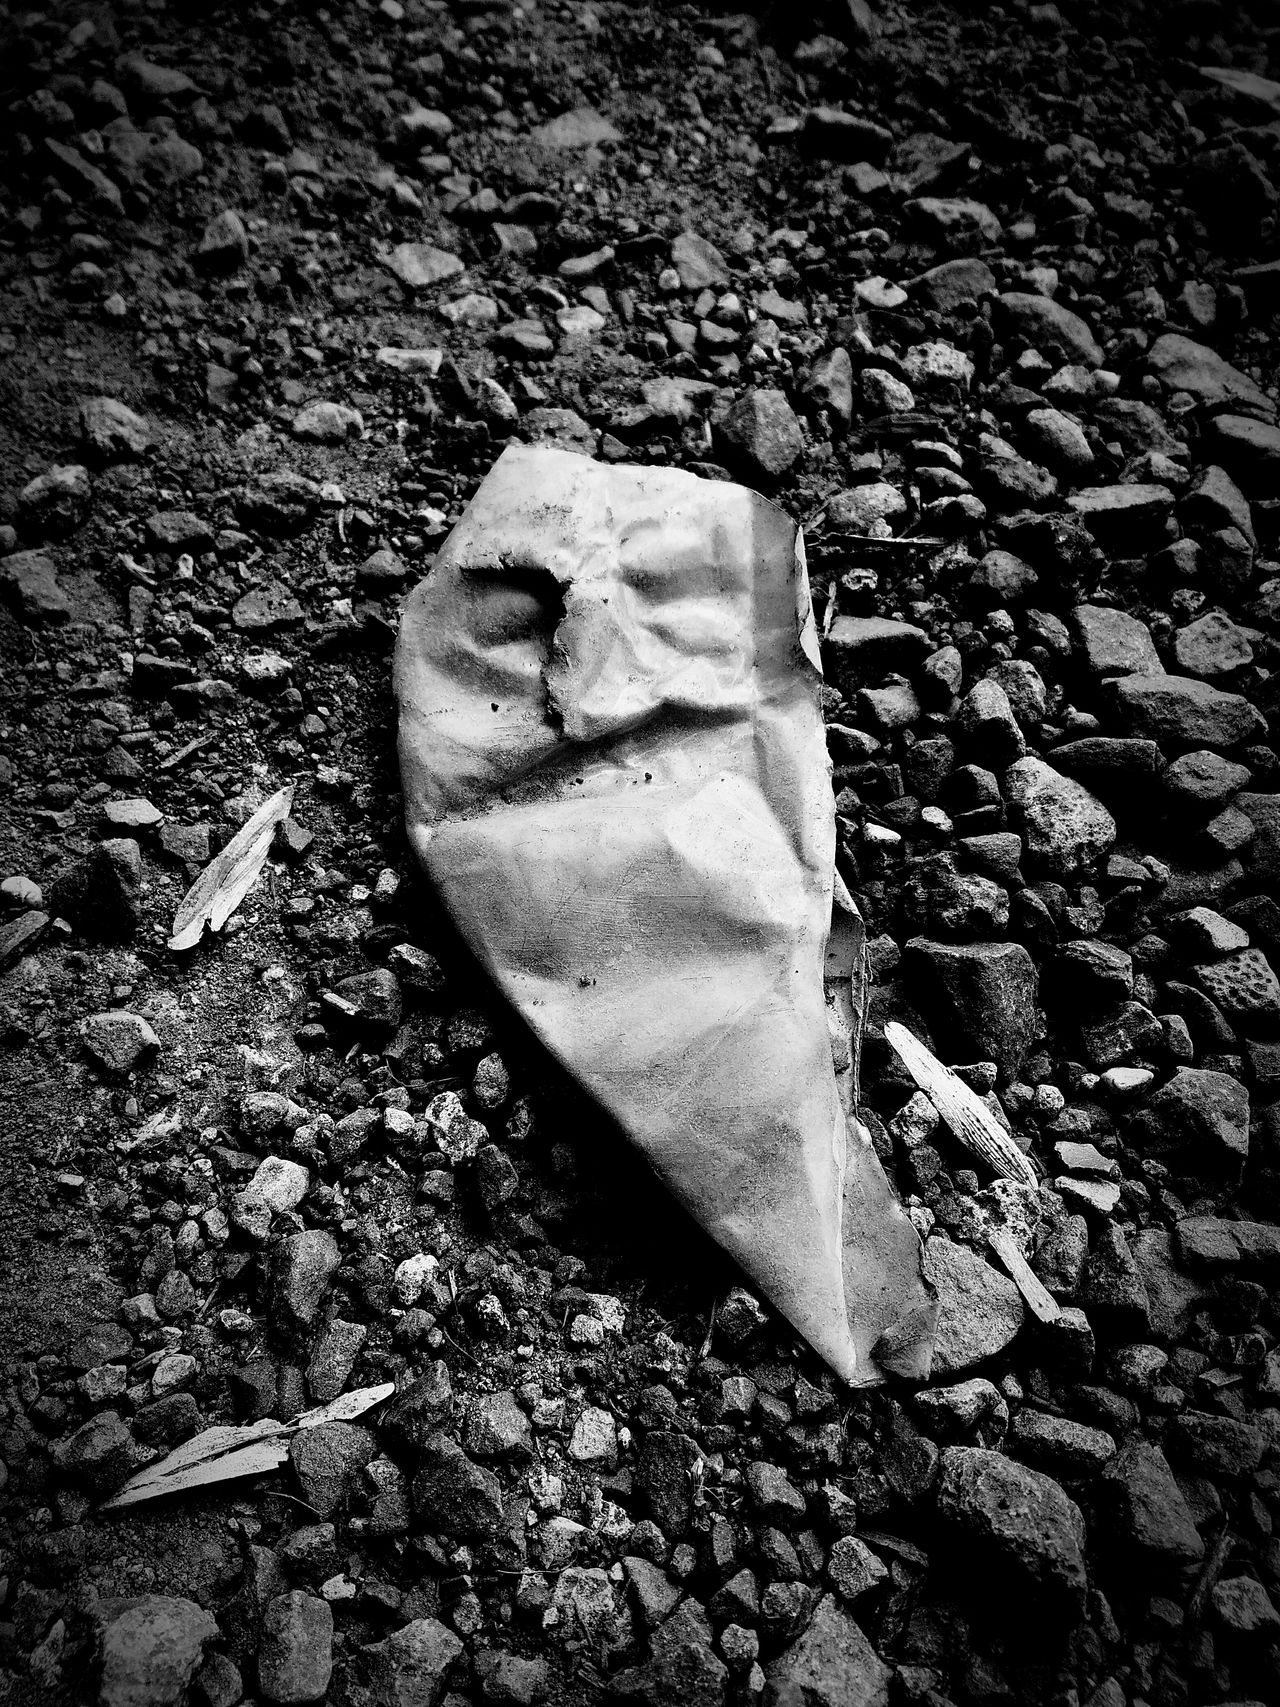 Jabbathehutt Reincarnation Blackandwhite Black And White Punk Beauty In Decay